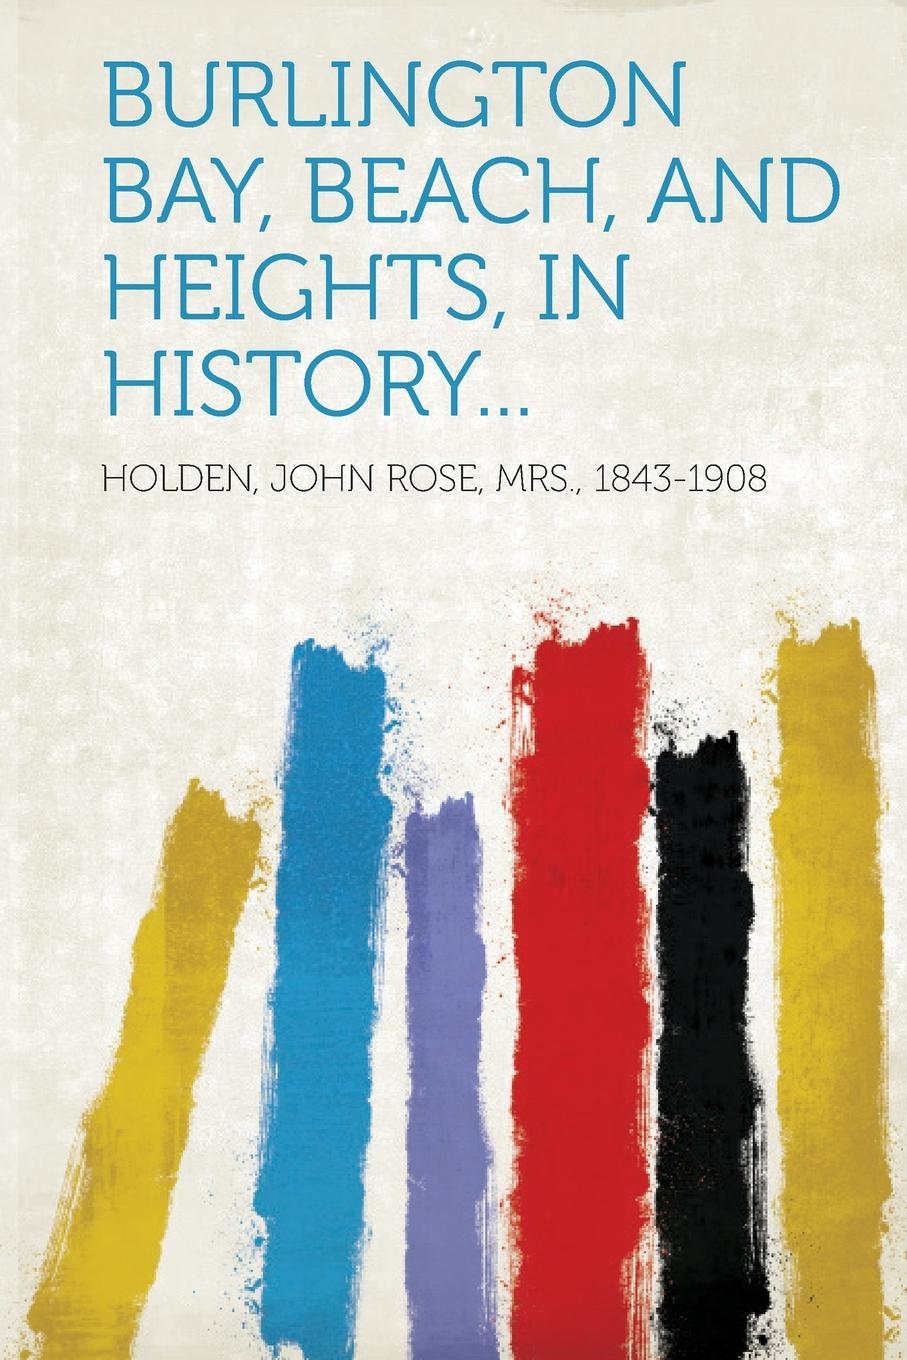 Burlington Bay, Beach, and Heights, in History...